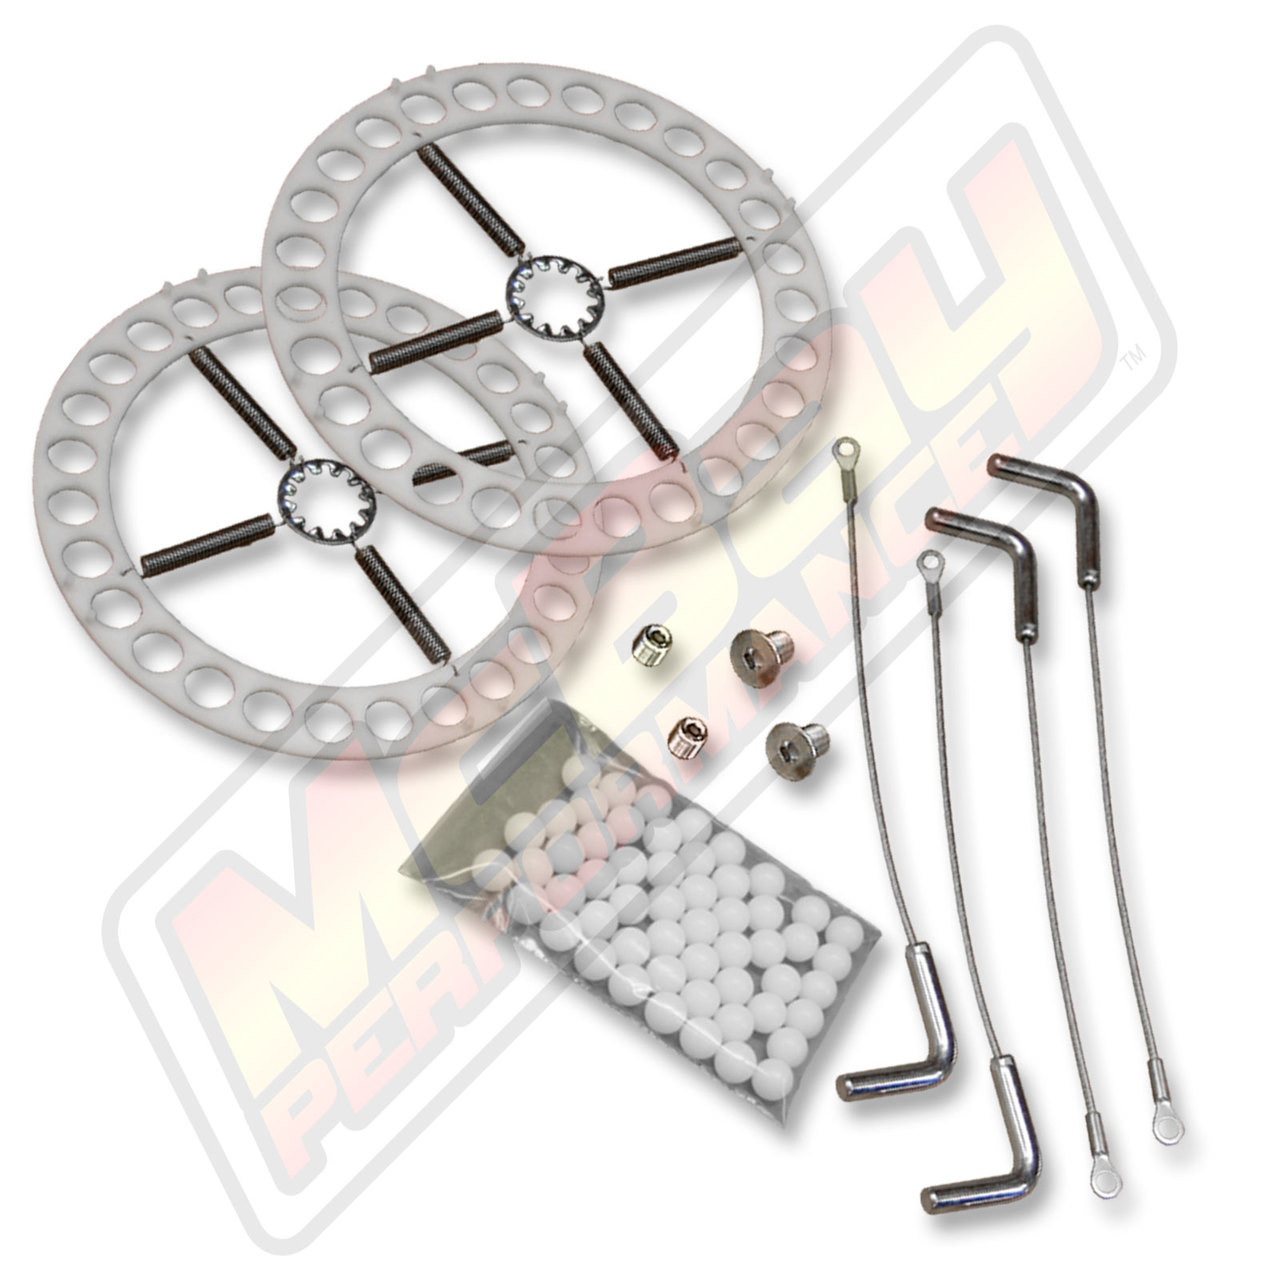 41-11 - Alignment Turn Plate Table Repair Kit with Stainless Steel Hardware & Lockpins   McBay Performance